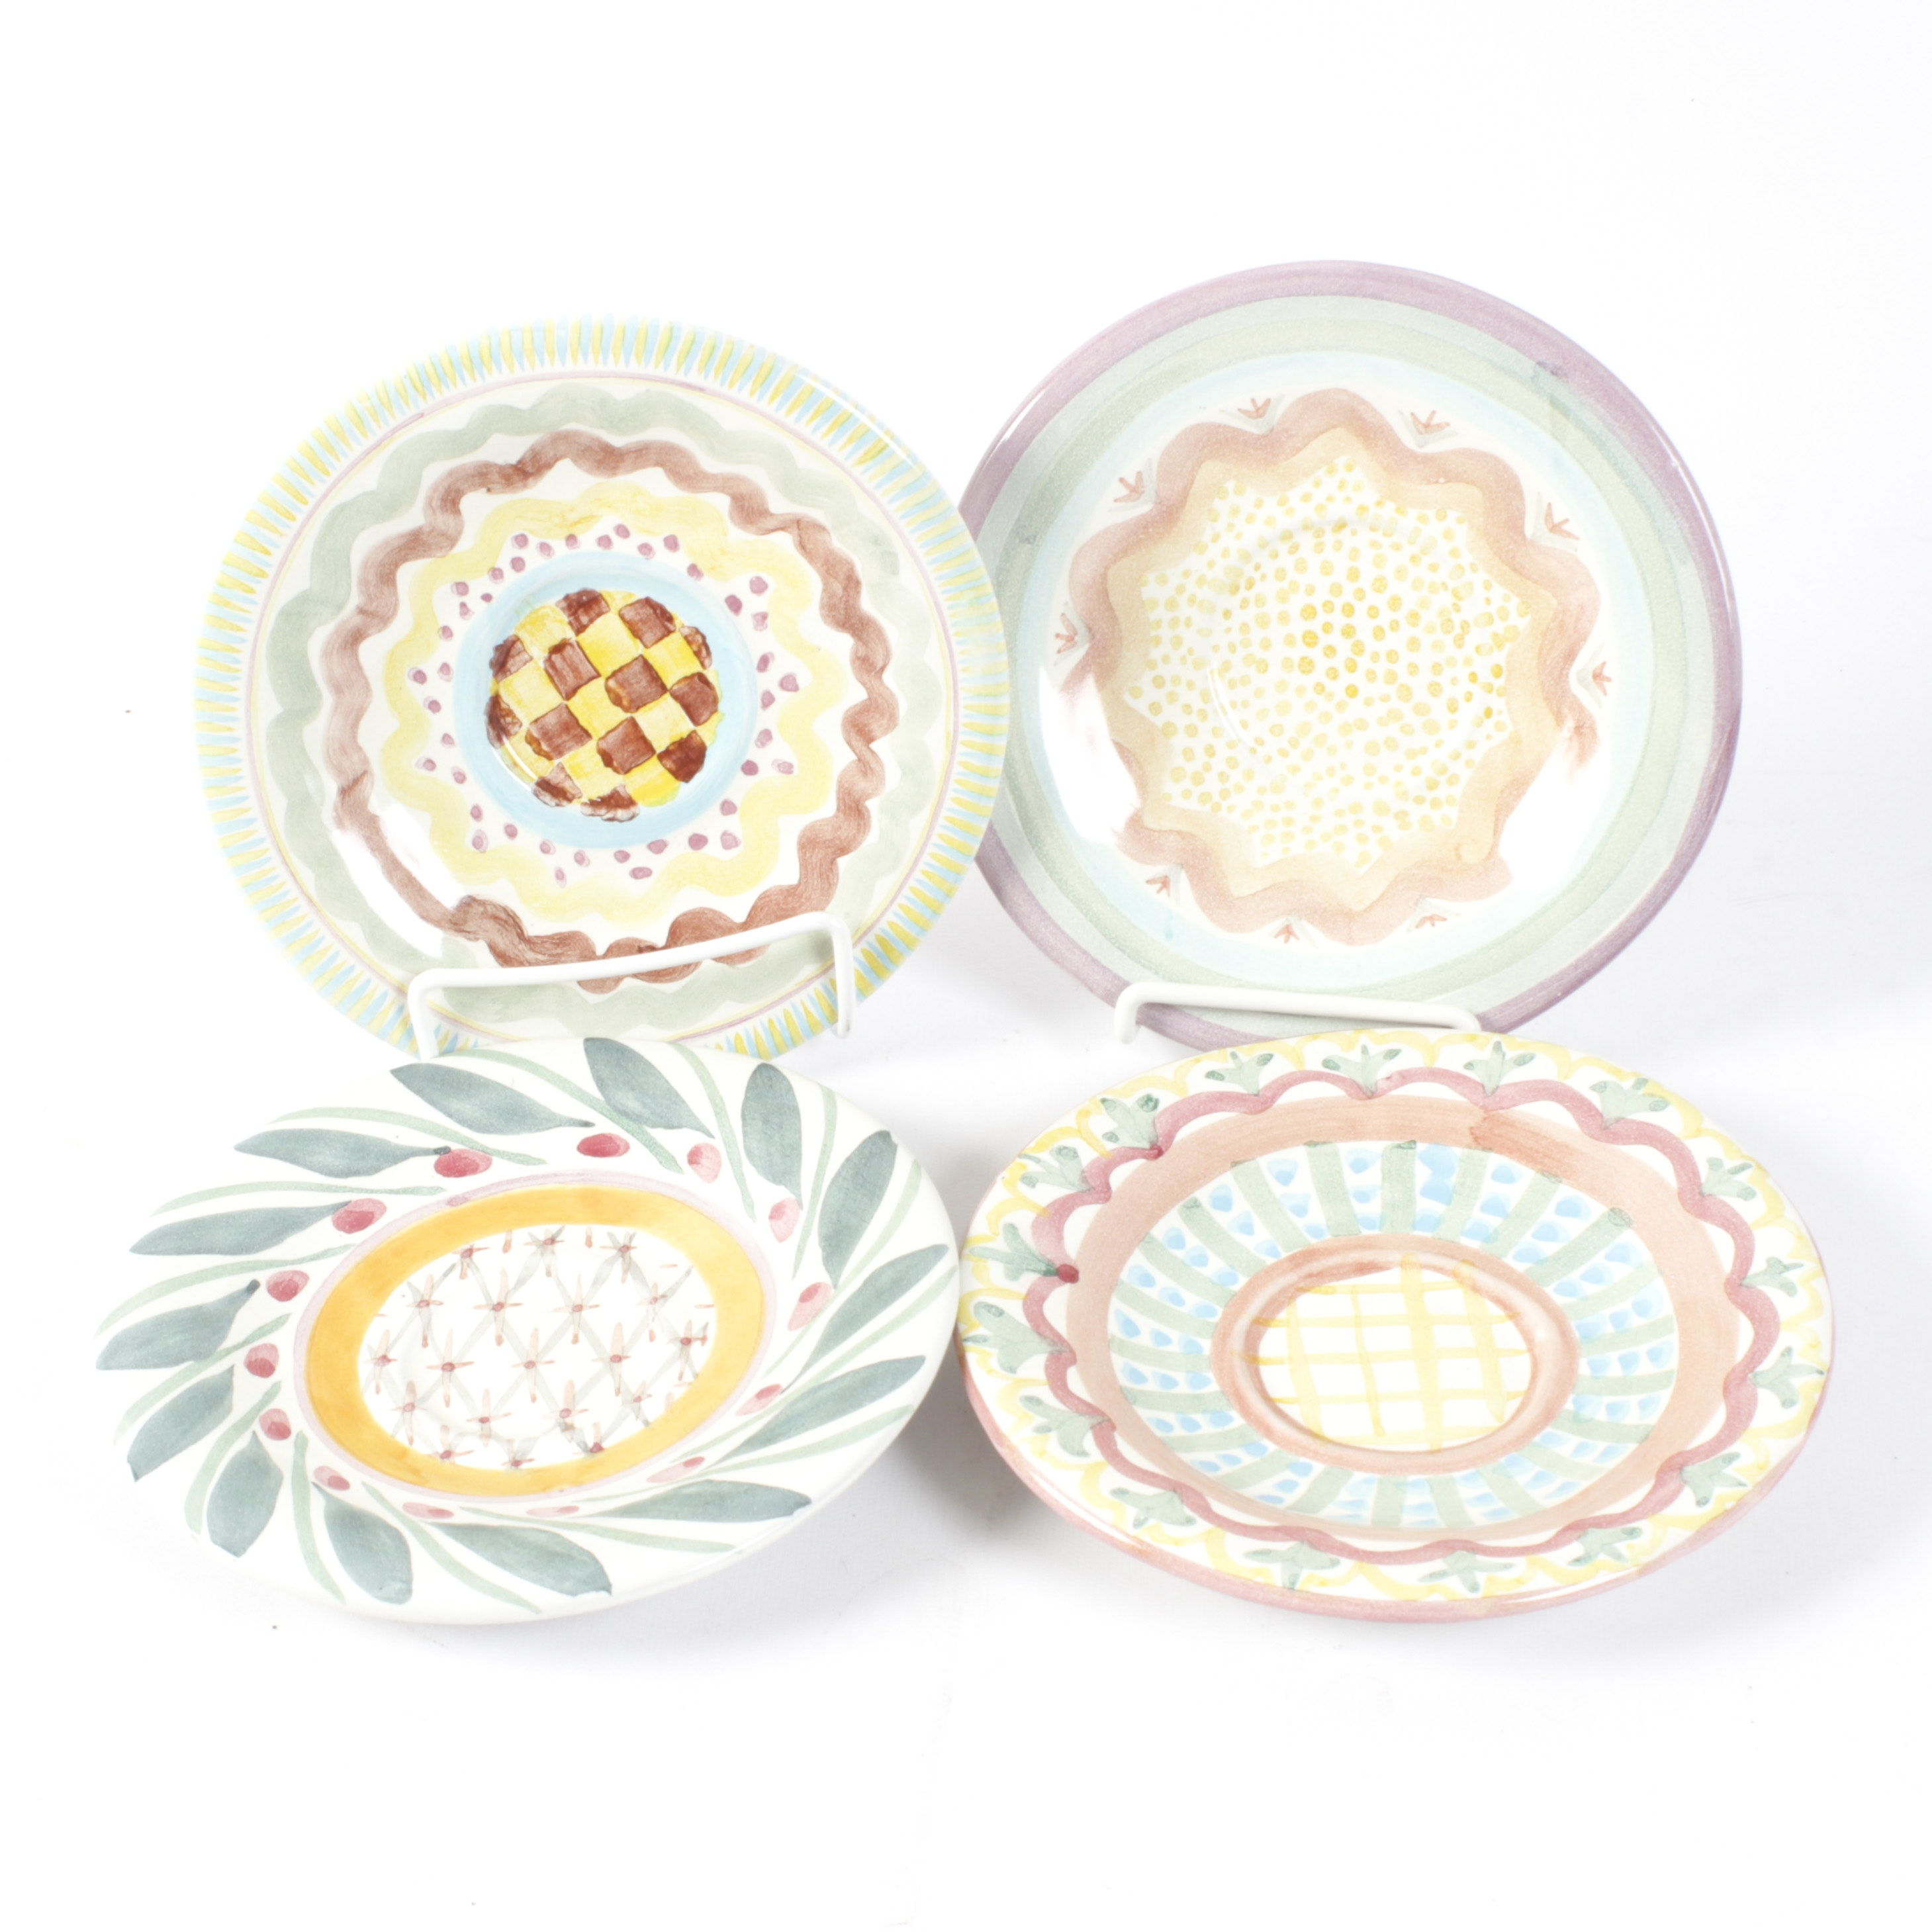 Victoria and Richard Mackenzie-Childs Collection of Saucers